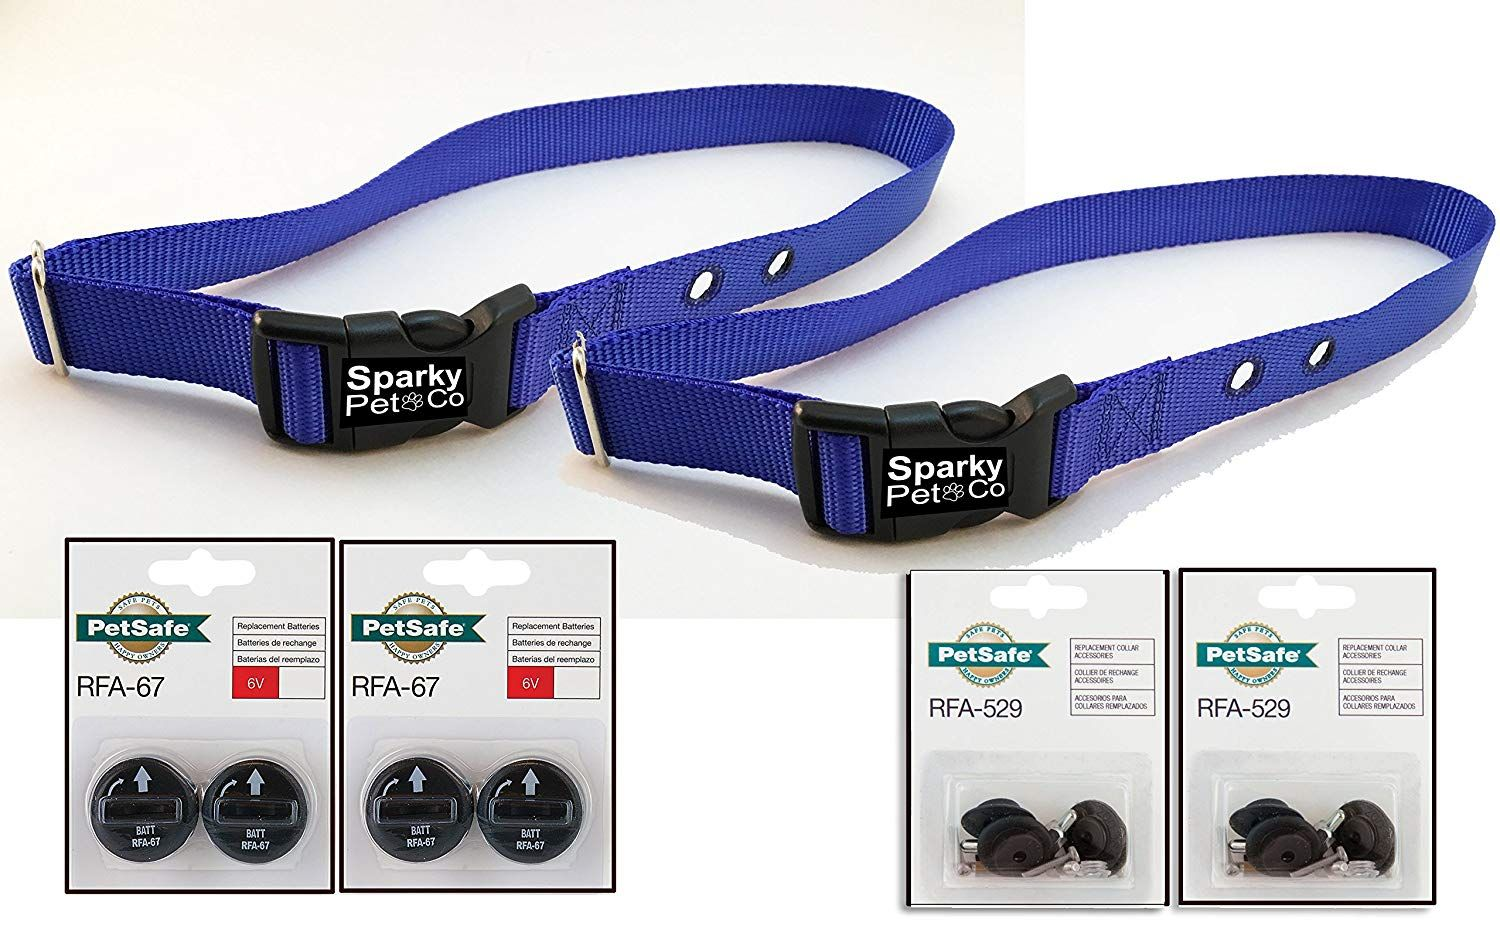 Sparky Petco Petsafe Compatible 2 Rfa 41 3 4 Navy Blue Color Dog Replacement Collar And 2 529 2 2 Rfa With Images Dog Training Pads Dog Training Collar Dog Diapers